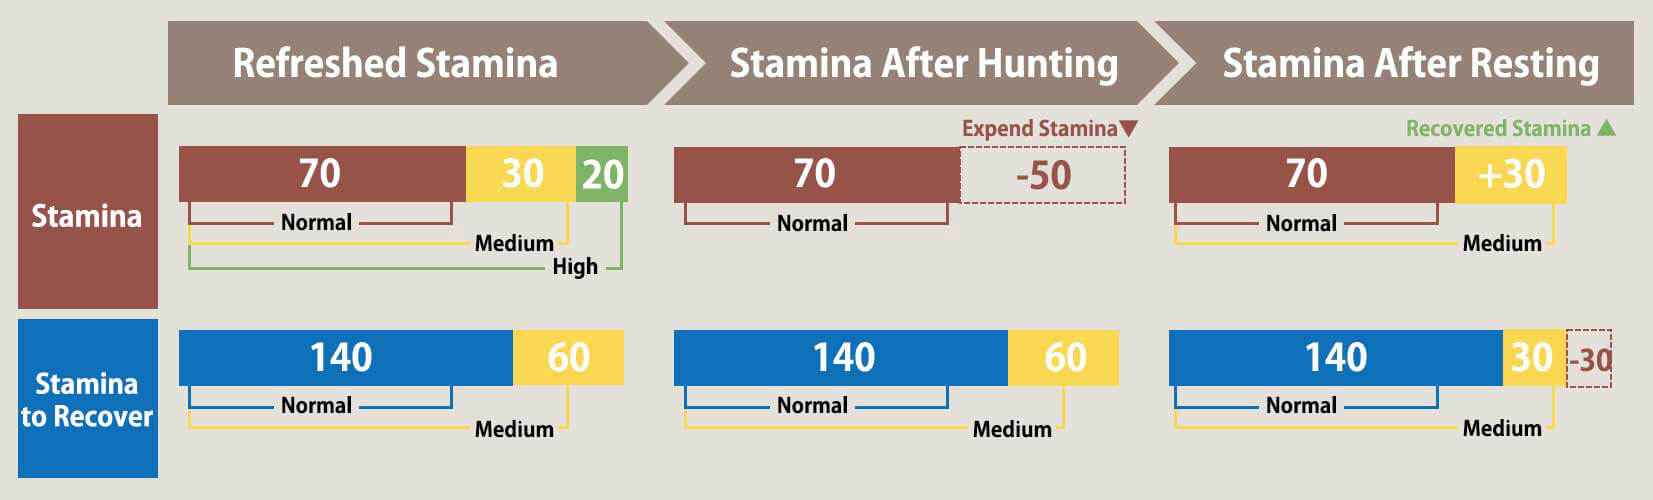 Stamina Charge Requirements